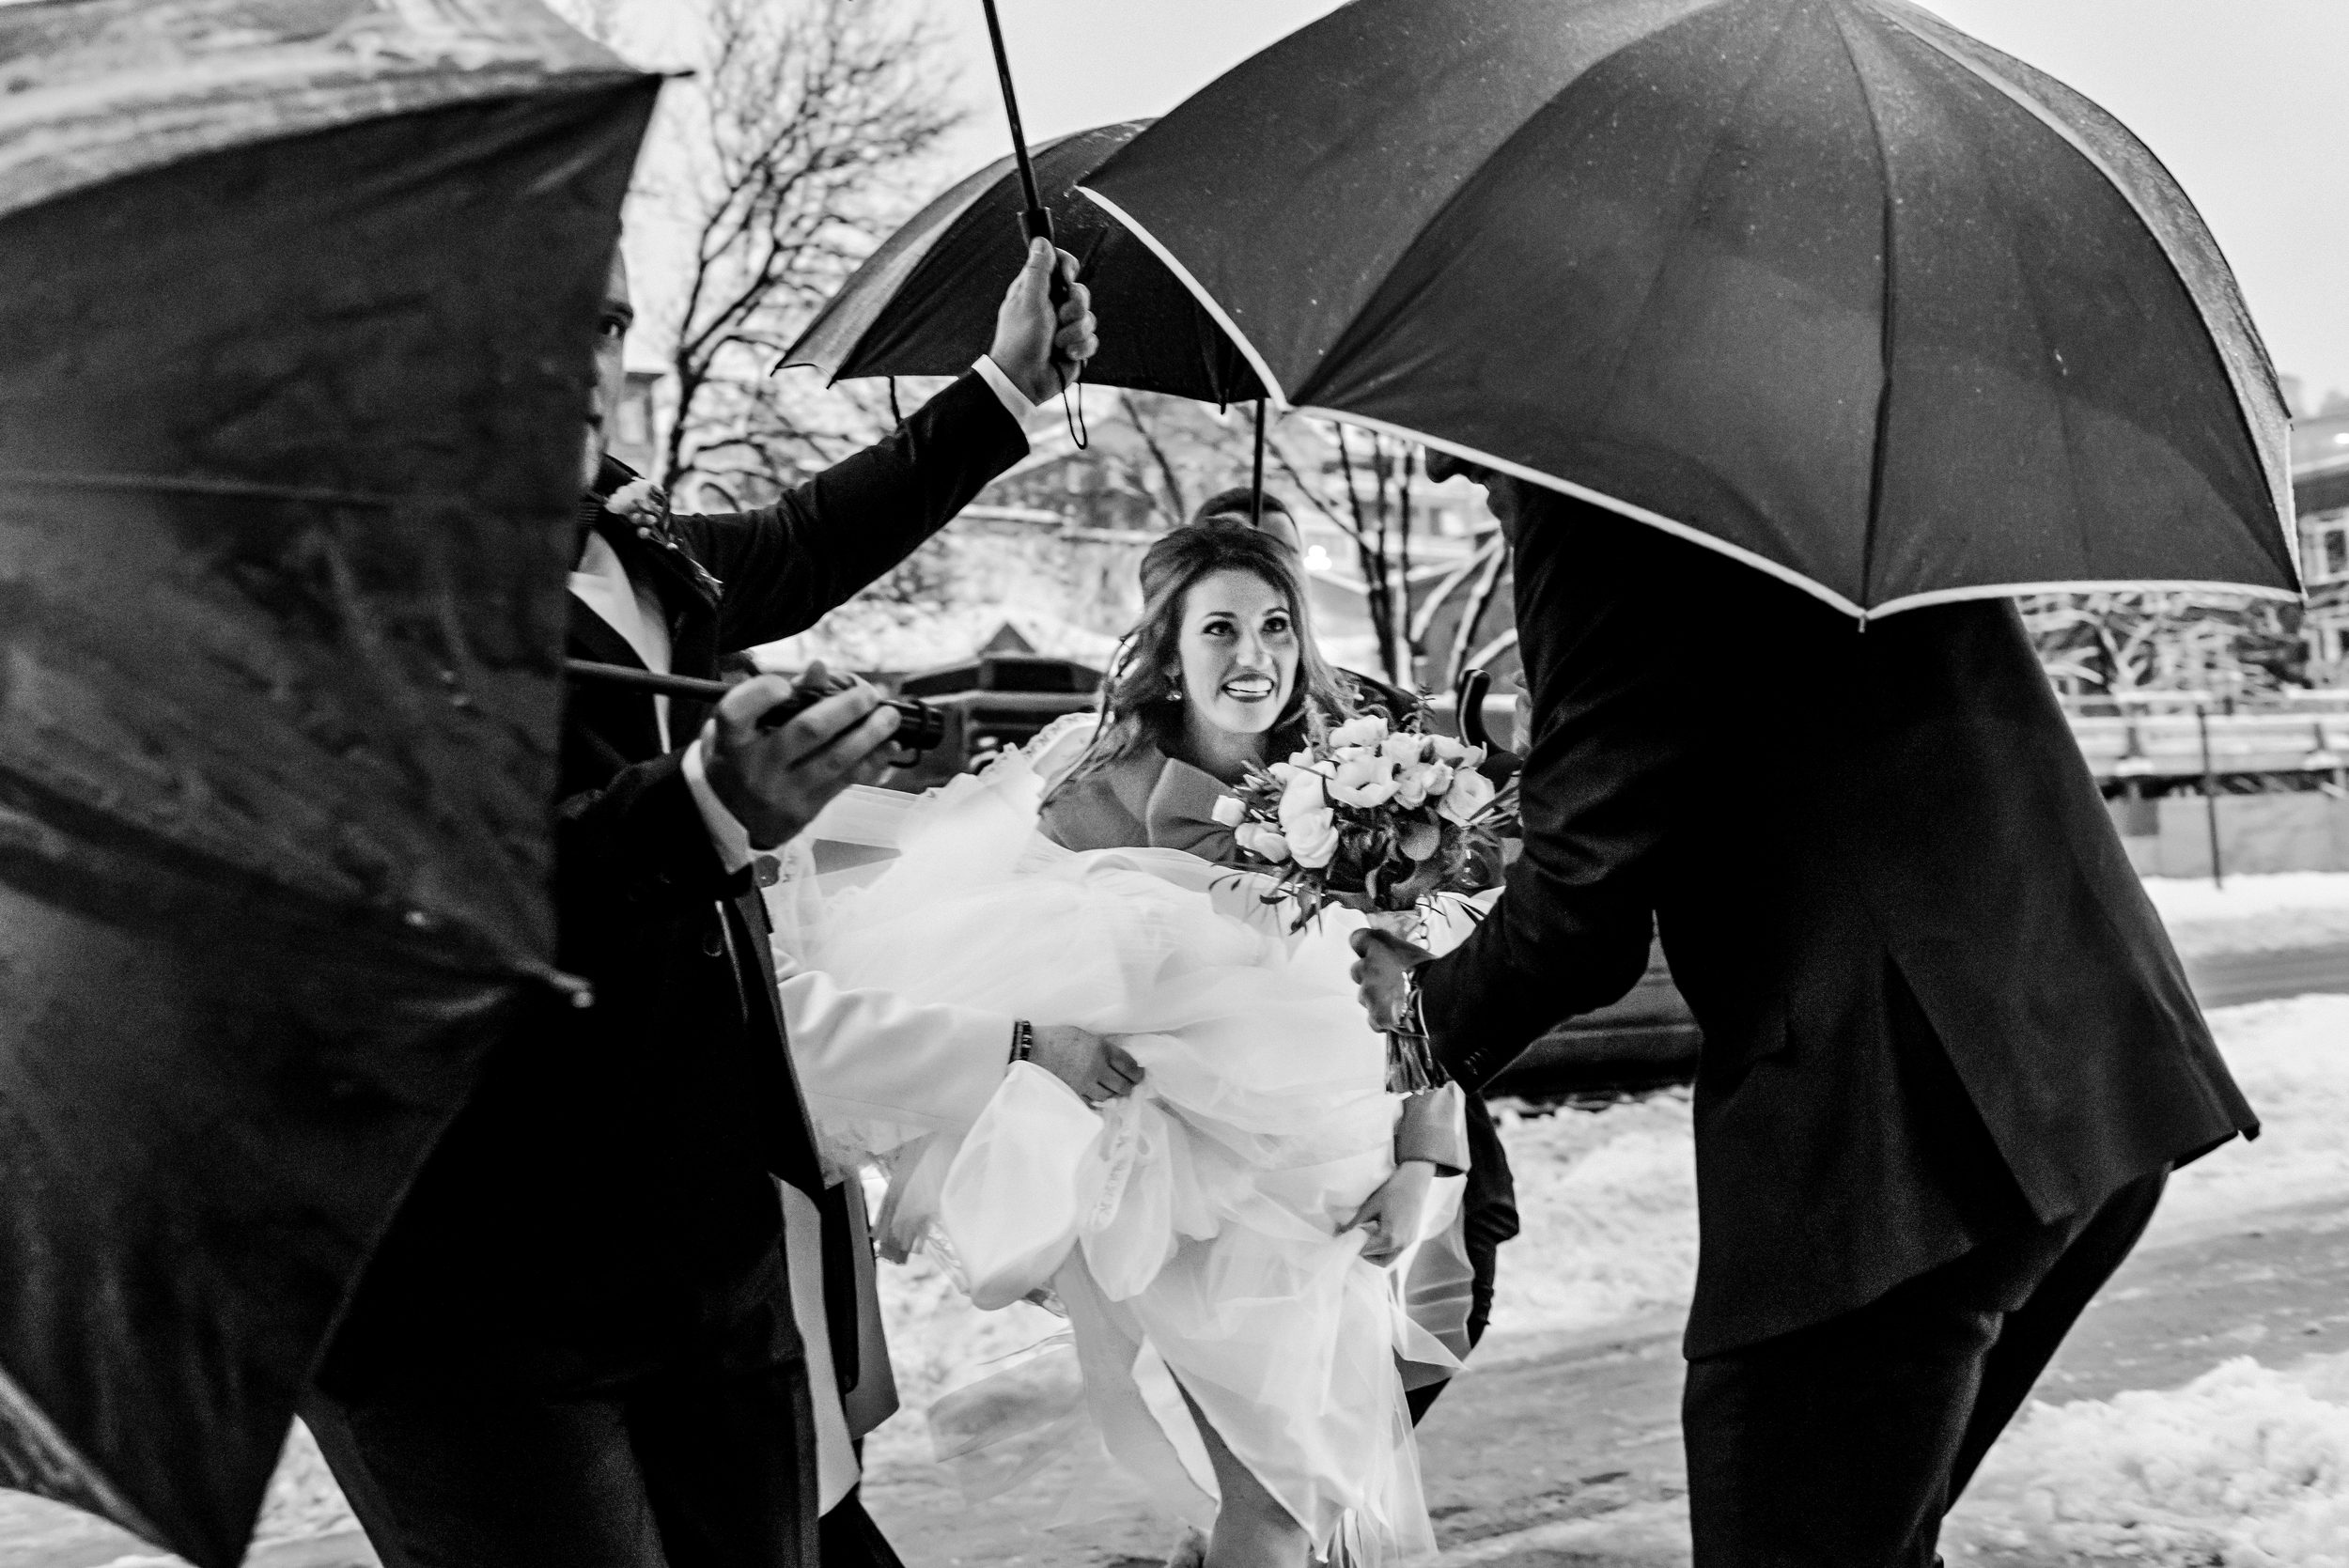 The bride arriving at the ceremony with the groomsmen covering her from the rain with umbrellas